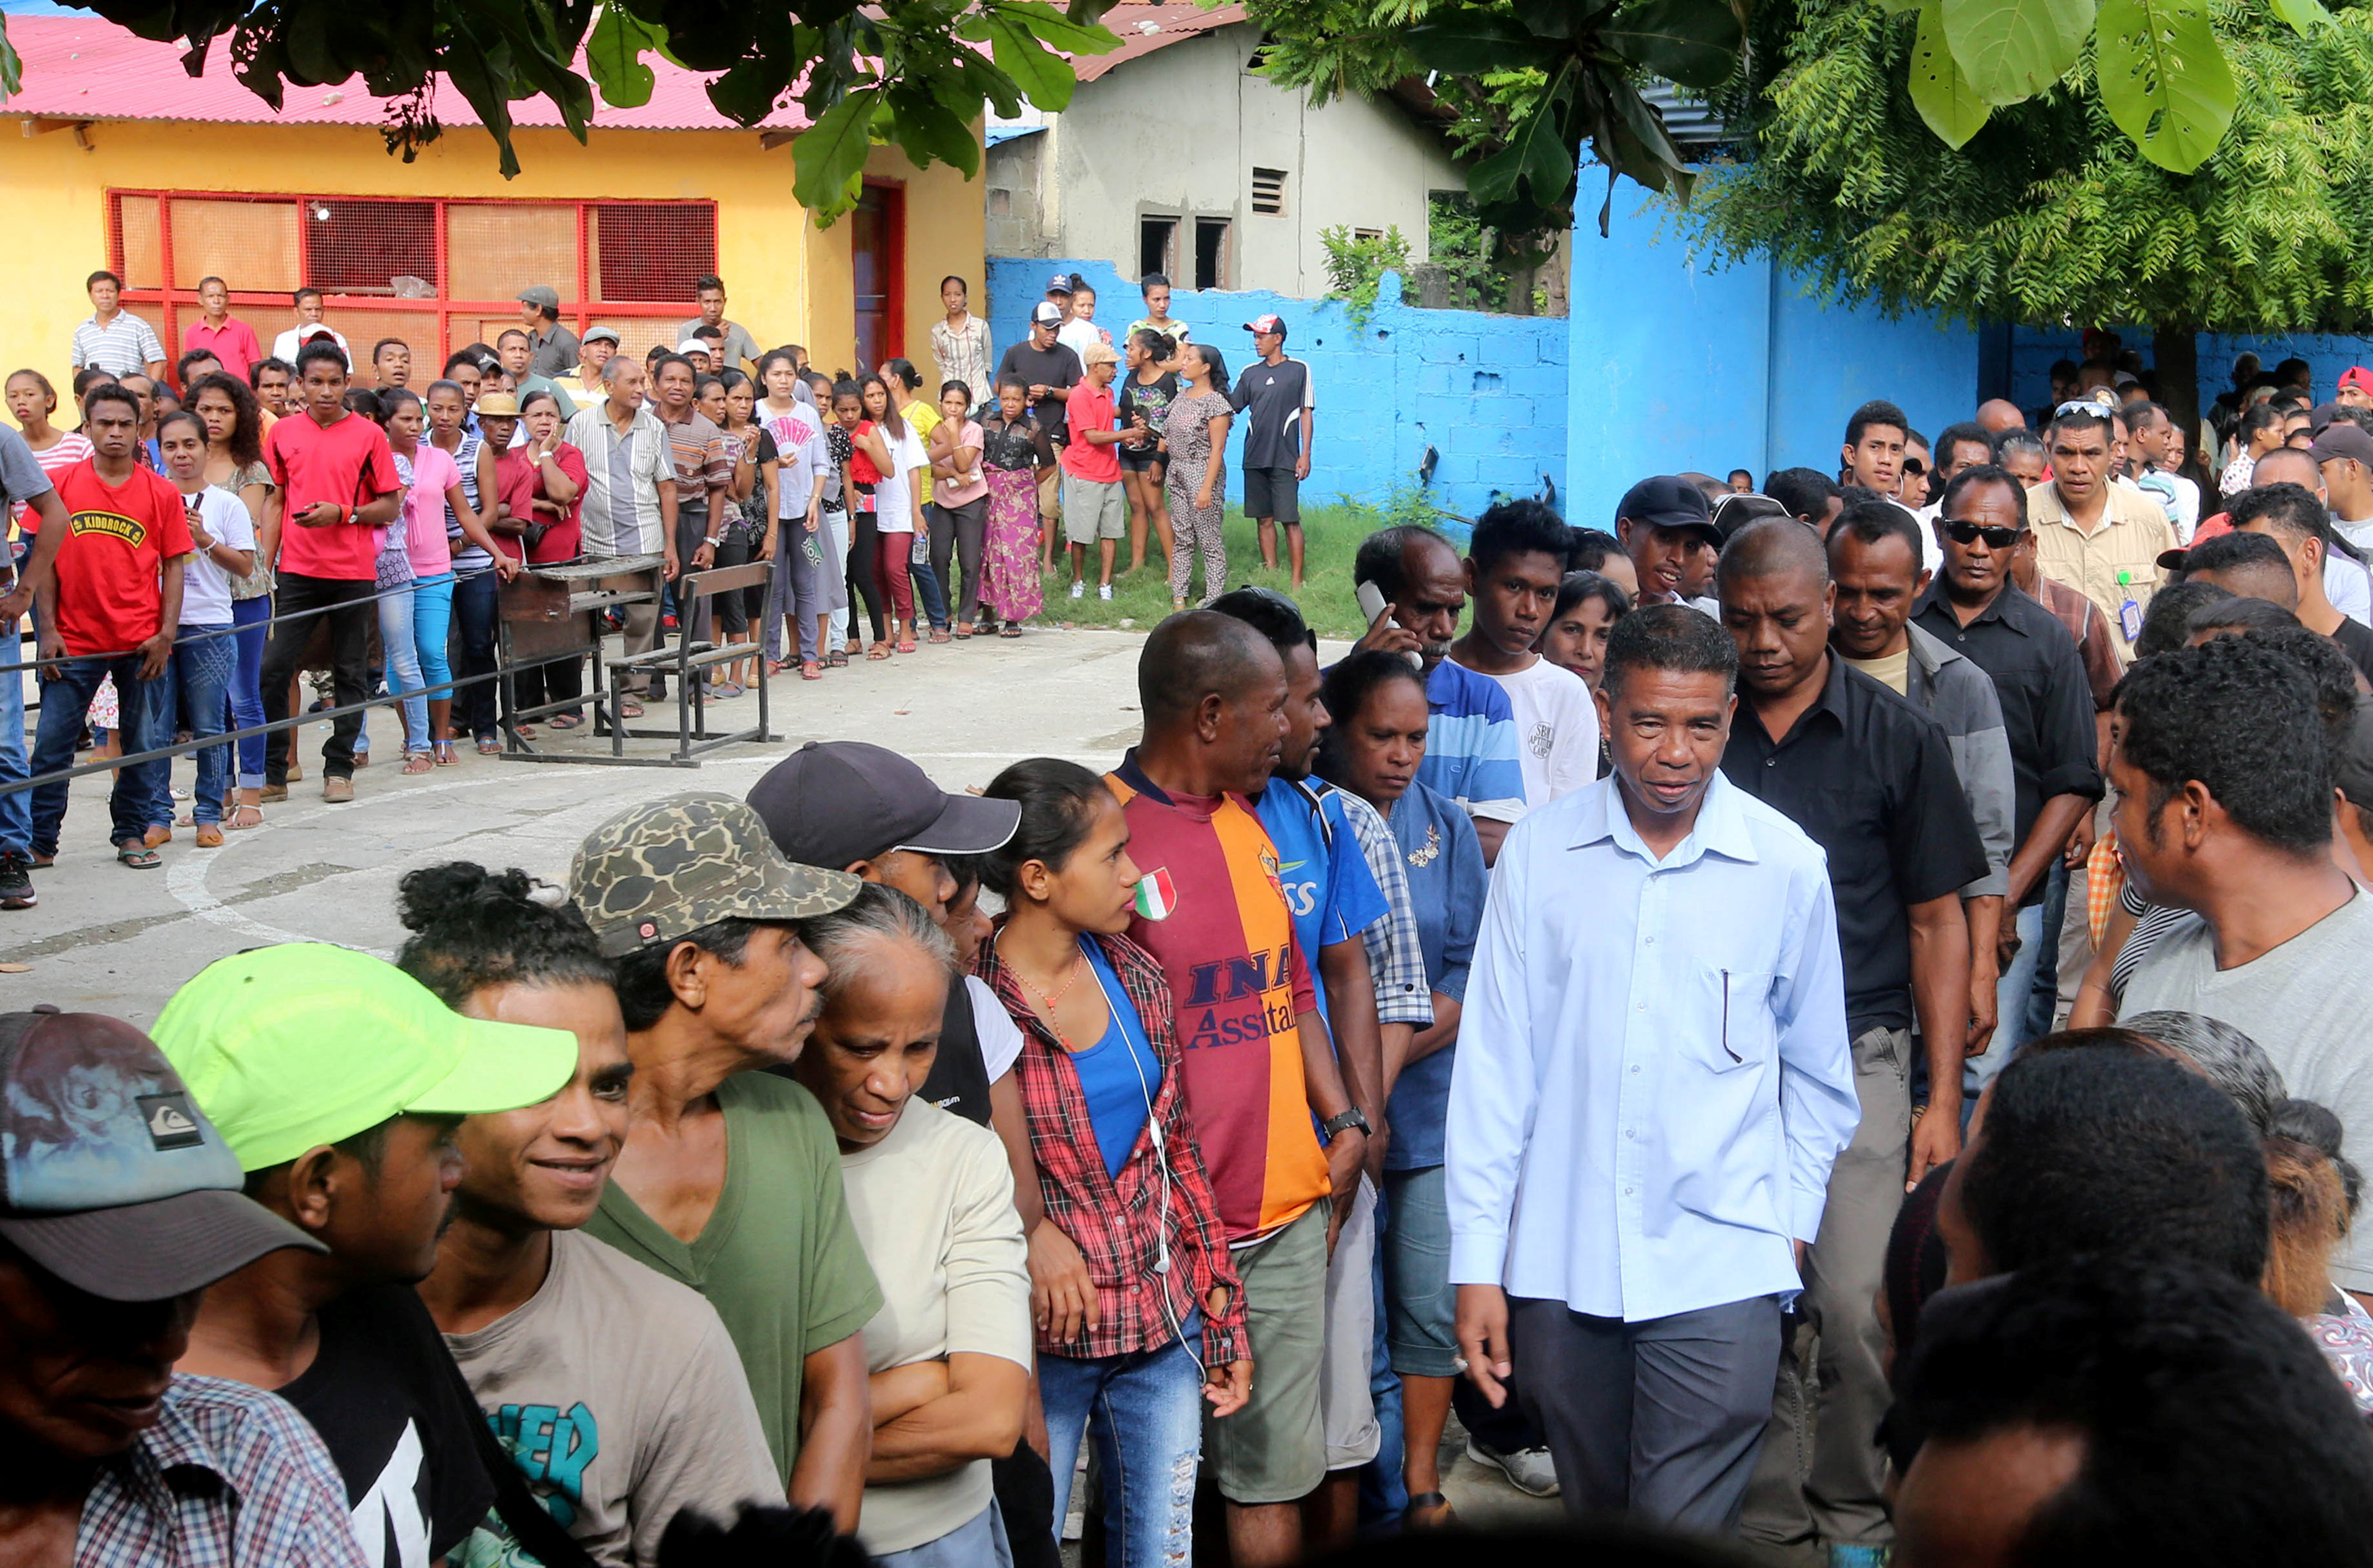 East Timor presidential candidate Antonio da Conceicao from the Democratic Party (R) arrives to cast his ballot during the presidential election at a polling station in Dili, East Timor, March 20, 2017.